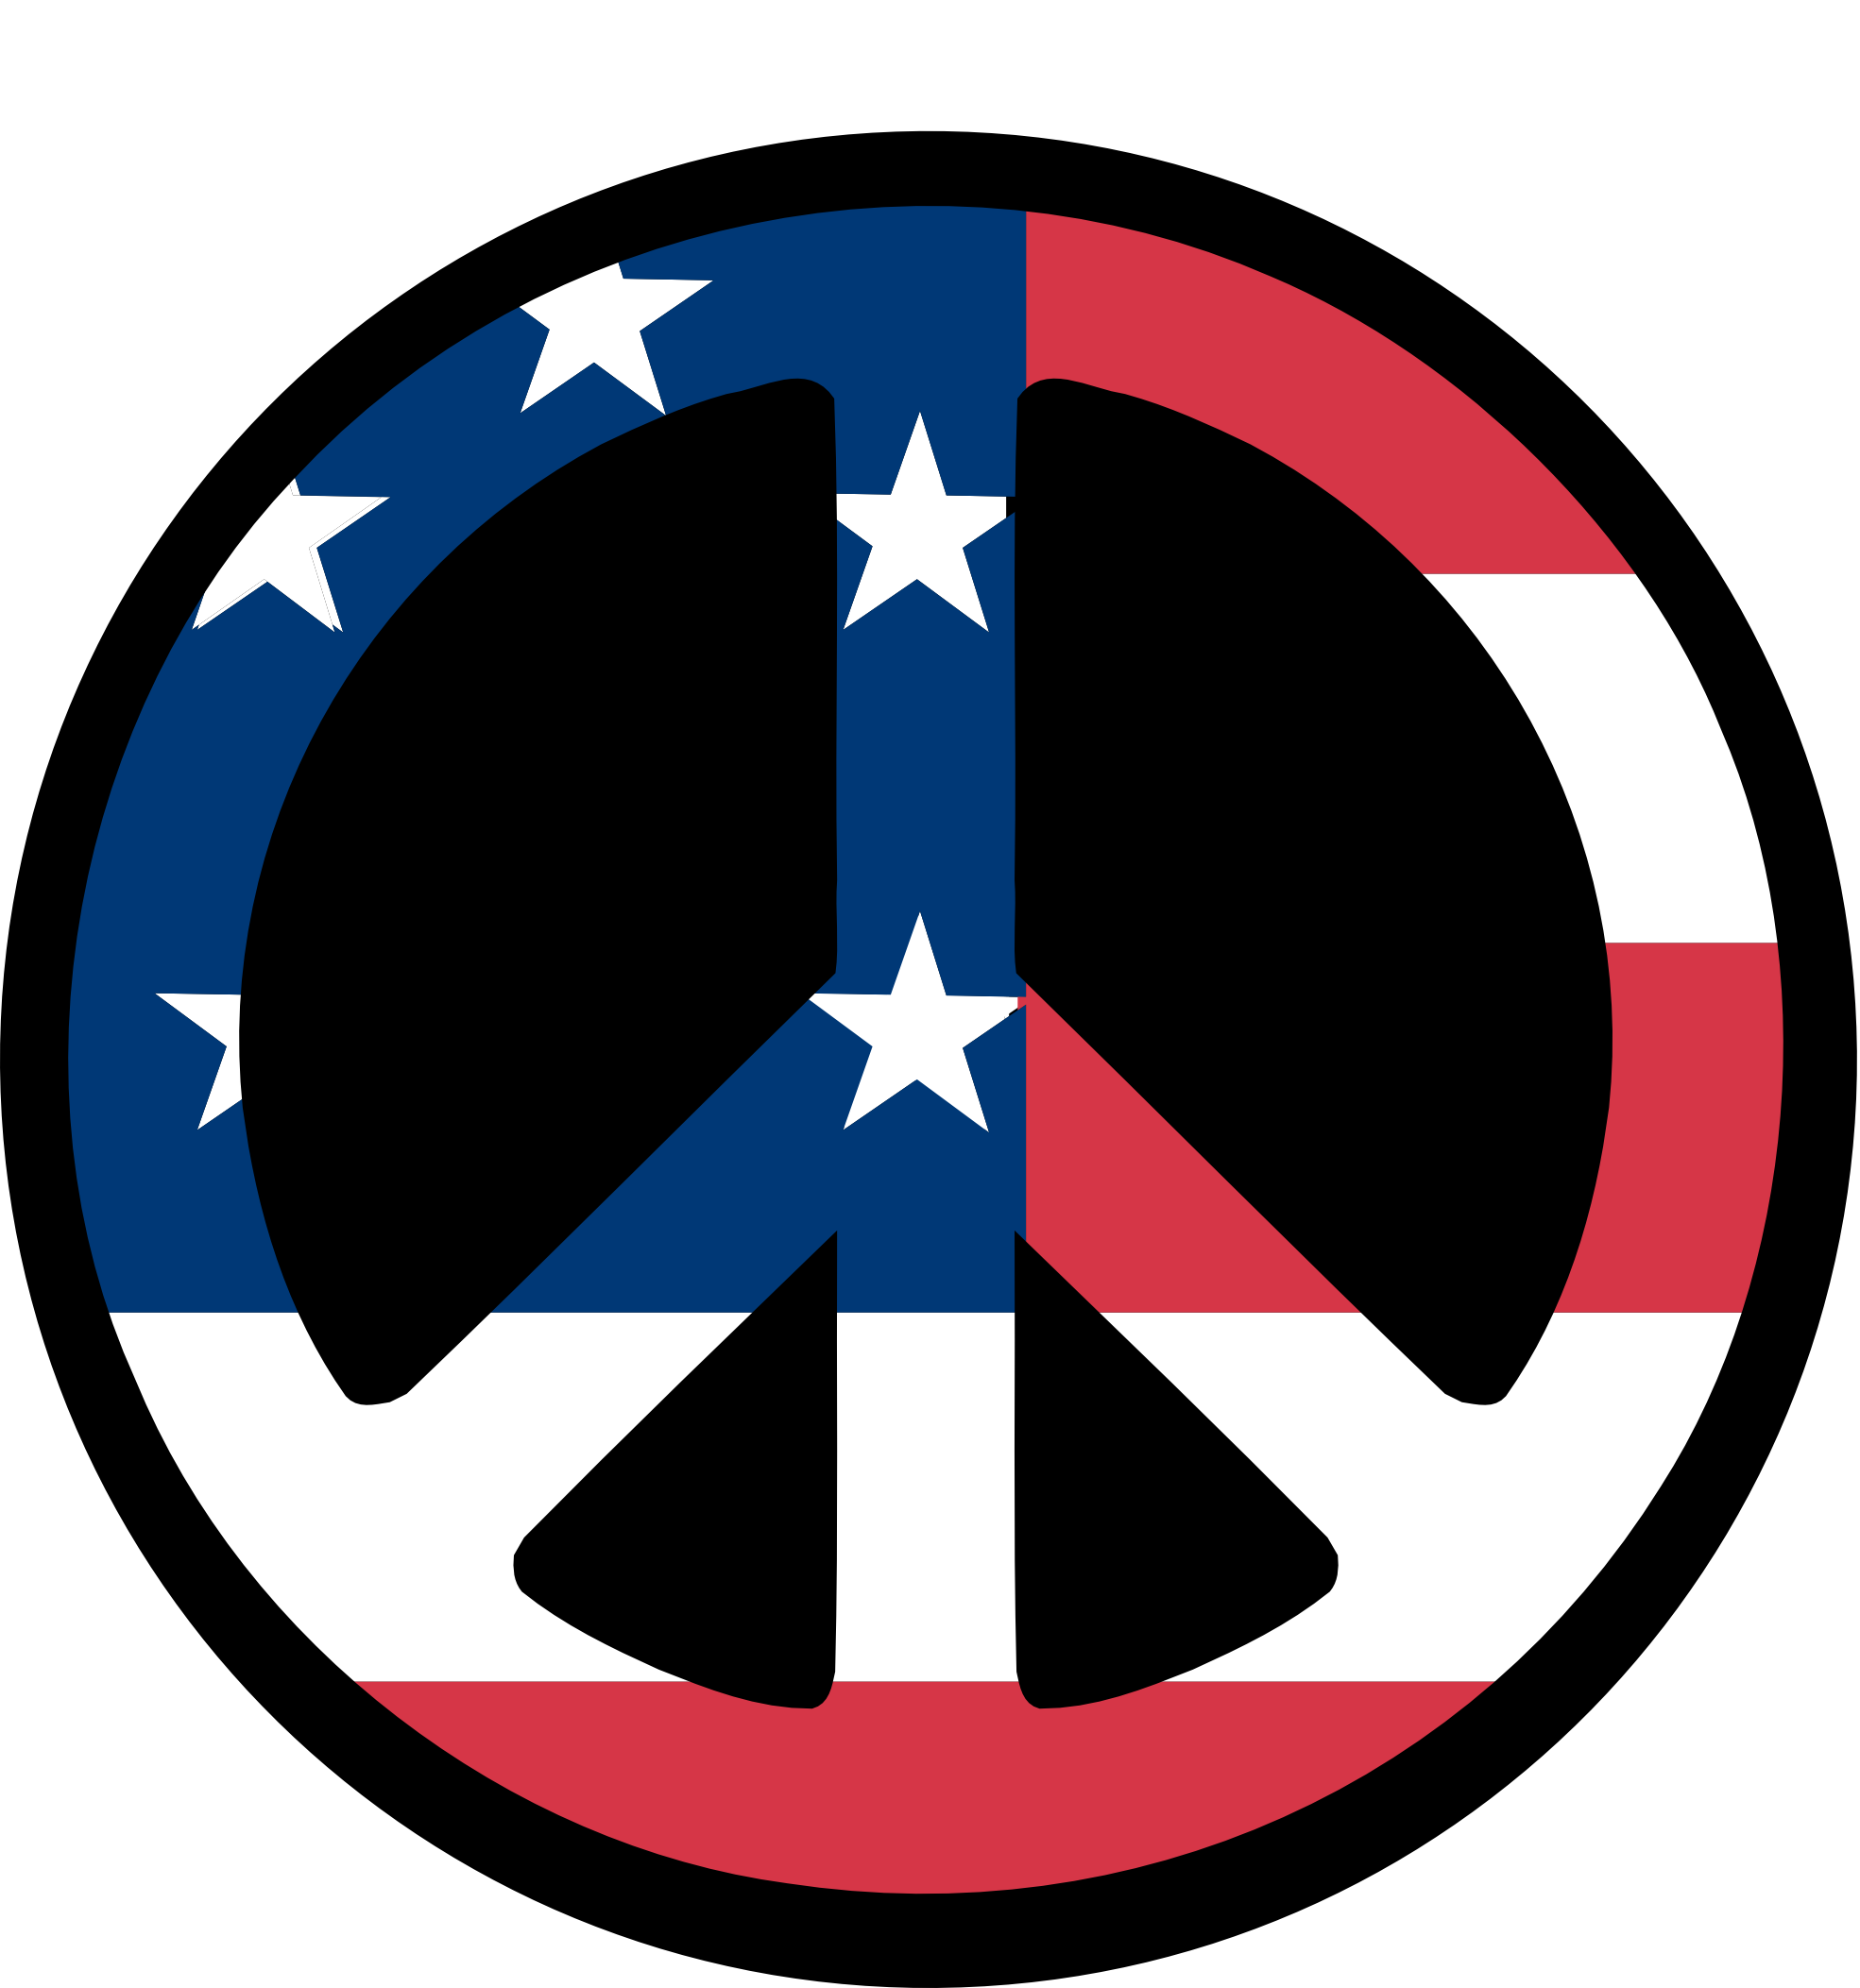 Peace signs images us flag peace symbol clipartist svg peace signs images us flag peace symbol clipartist svg buycottarizona